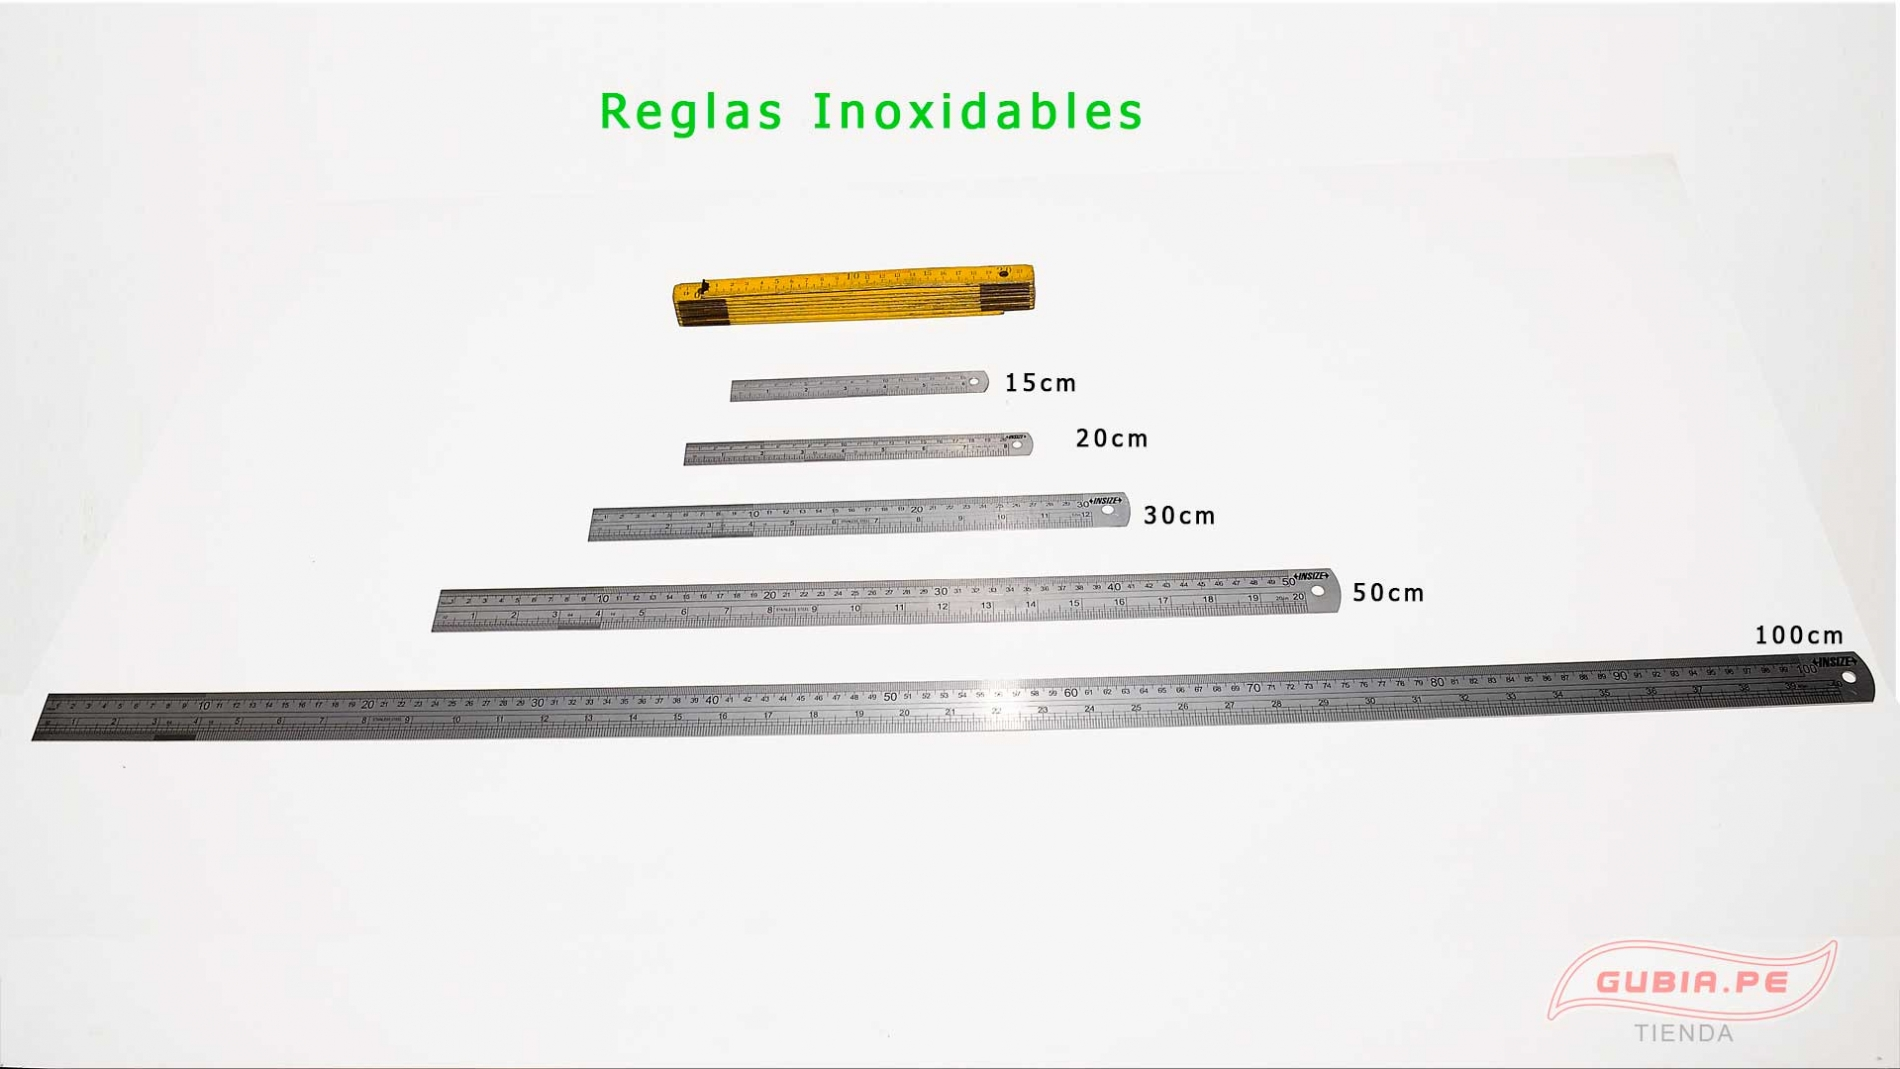 7110-150-Regla inoxidable 150mm Insize 7110-150-max-3.